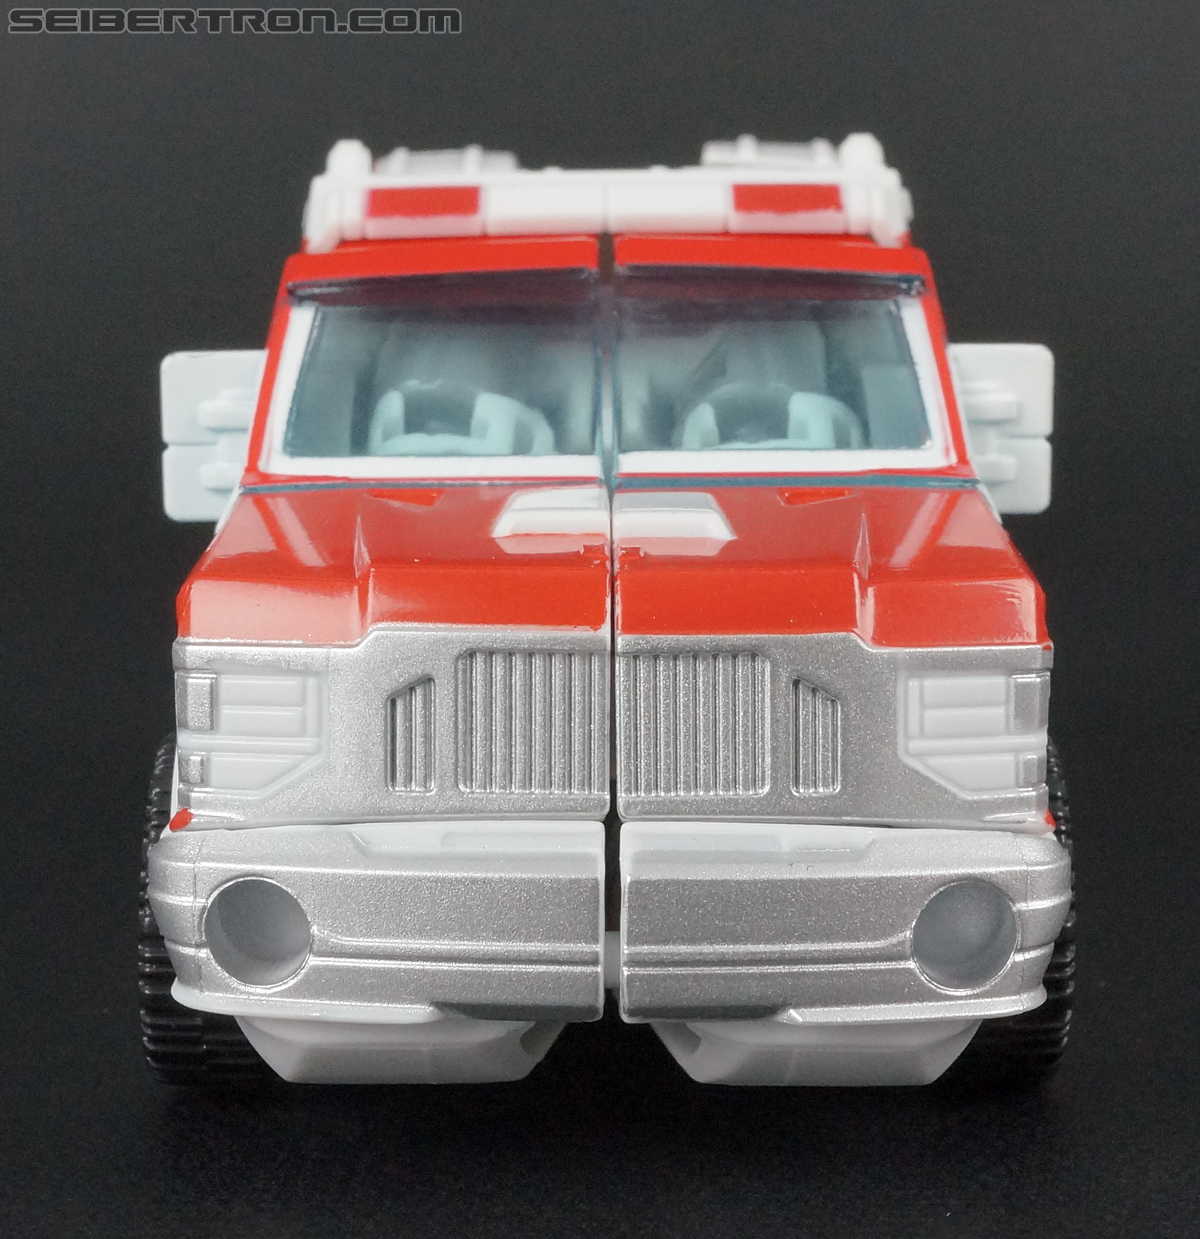 Transformers Prime: Robots In Disguise Ratchet (Image #21 of 178)